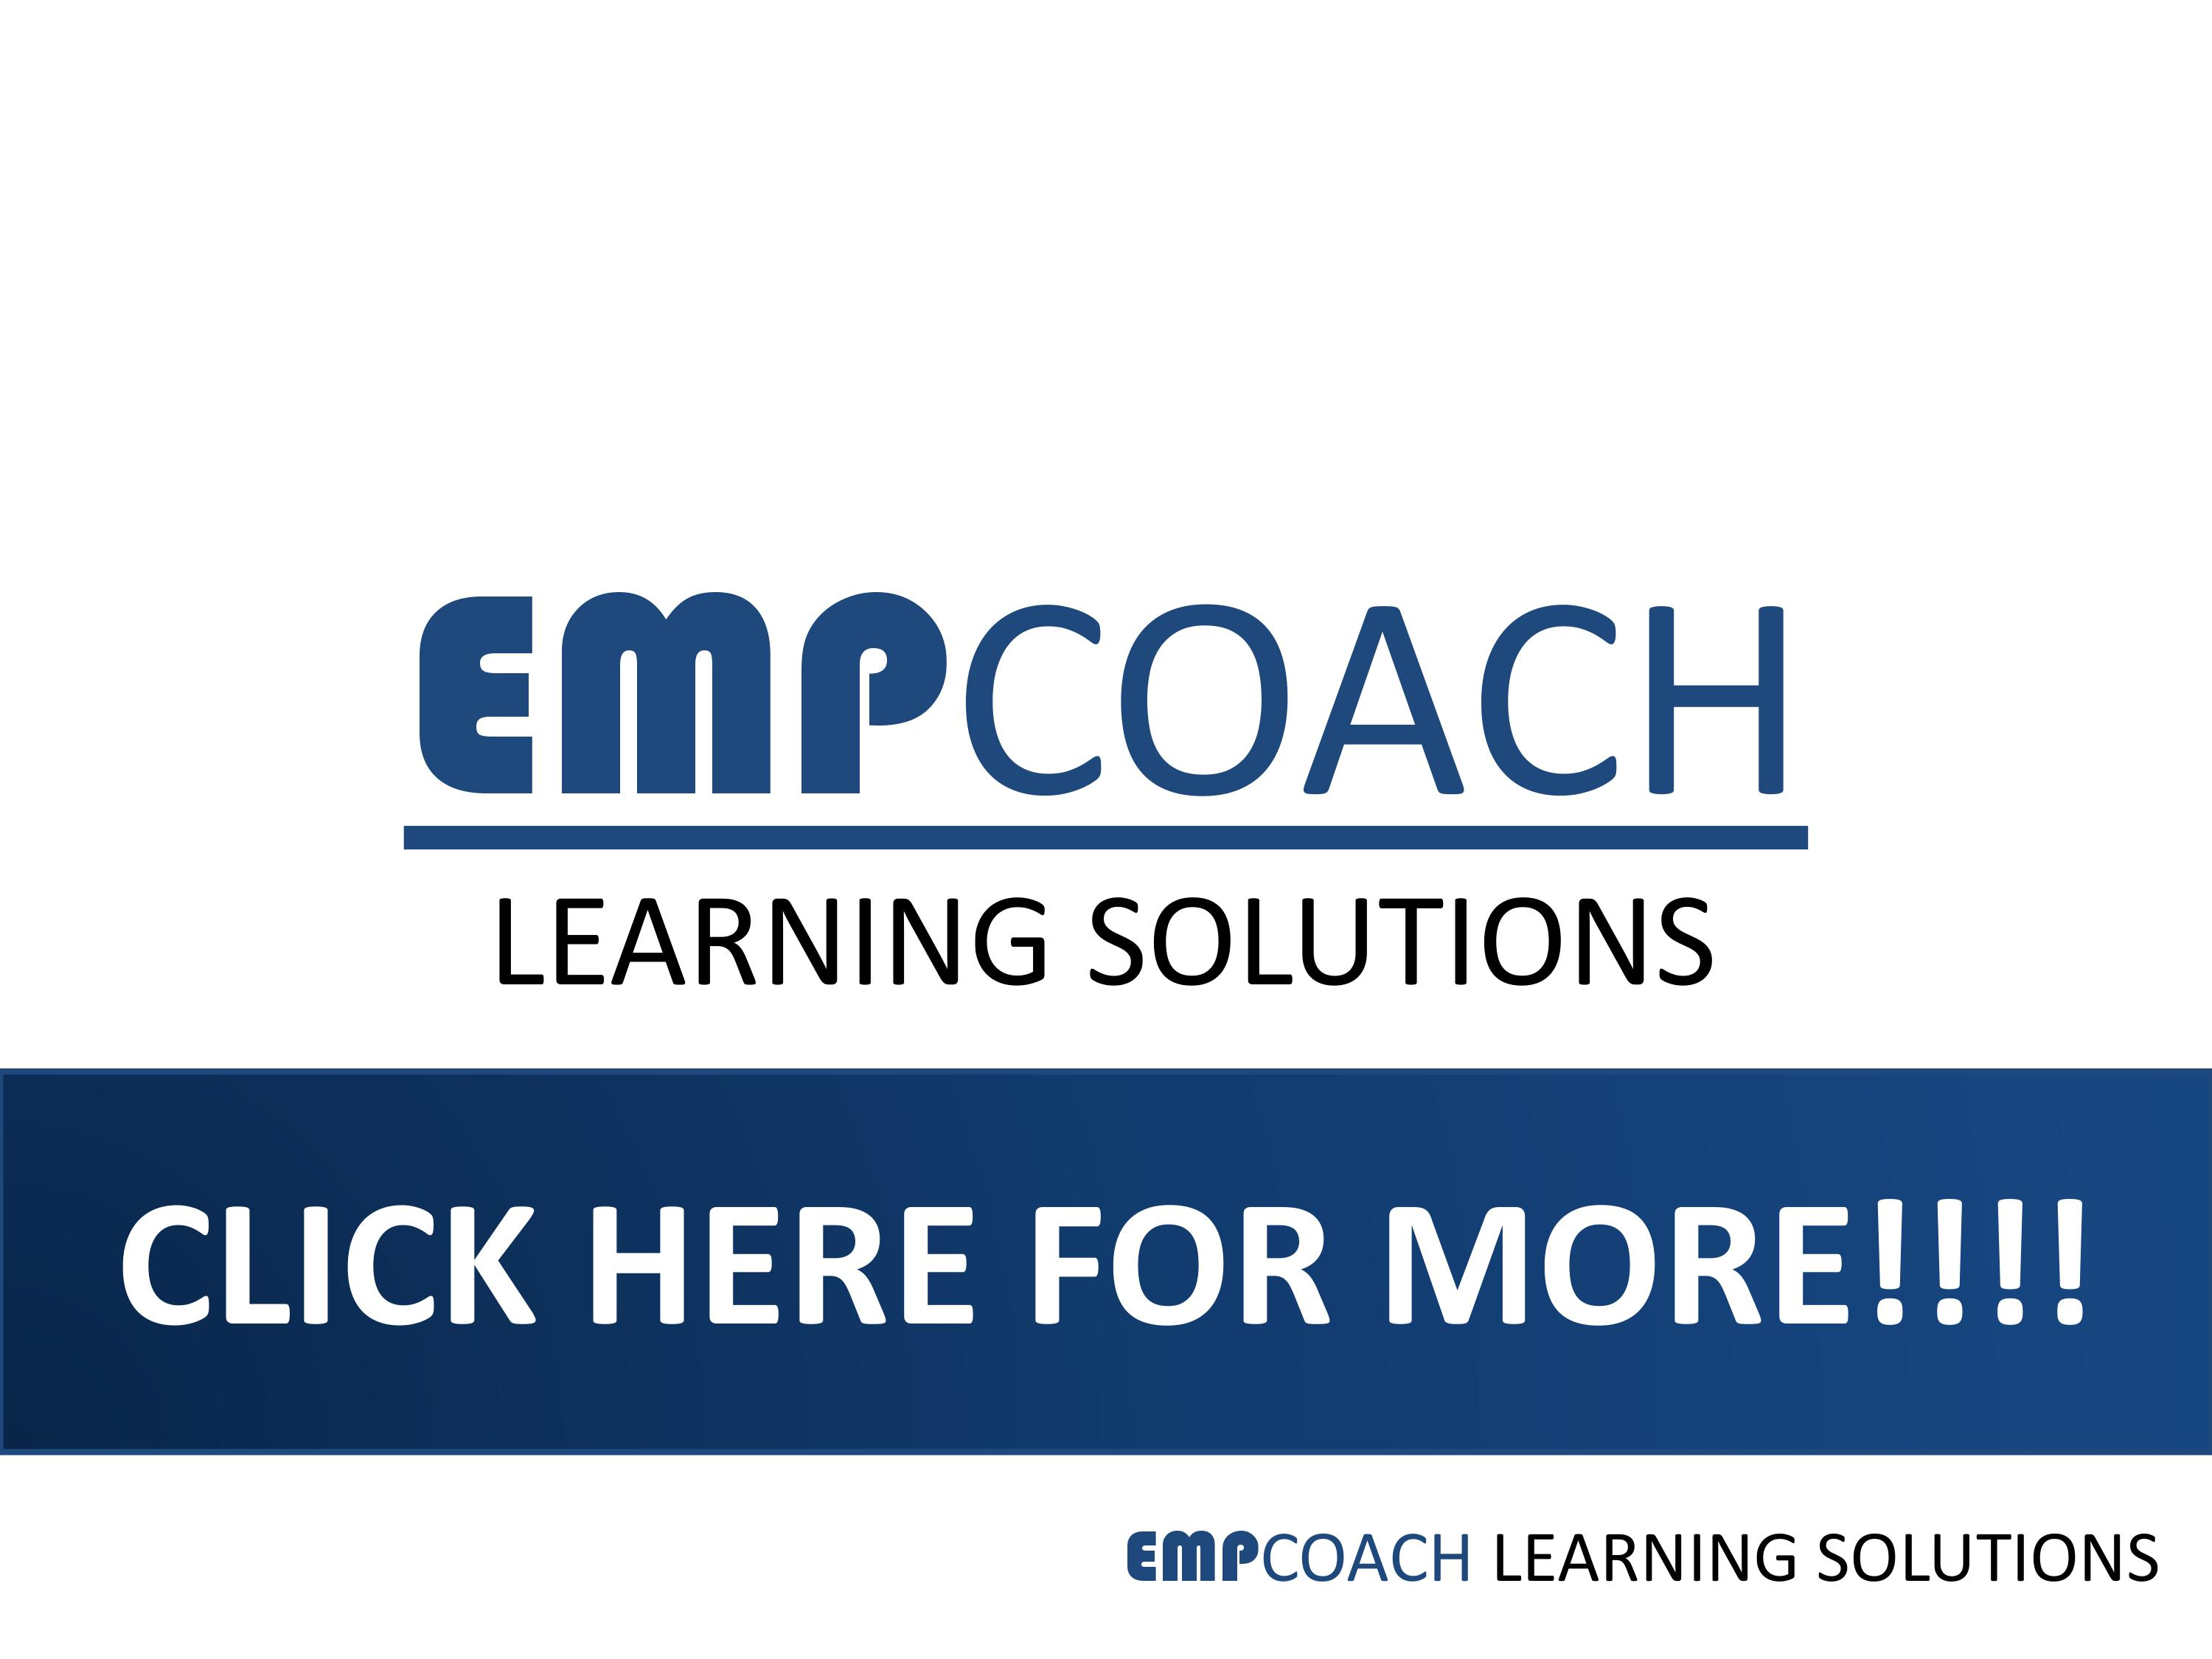 EMPCOACH LEARNING SOLUTIONS - logo